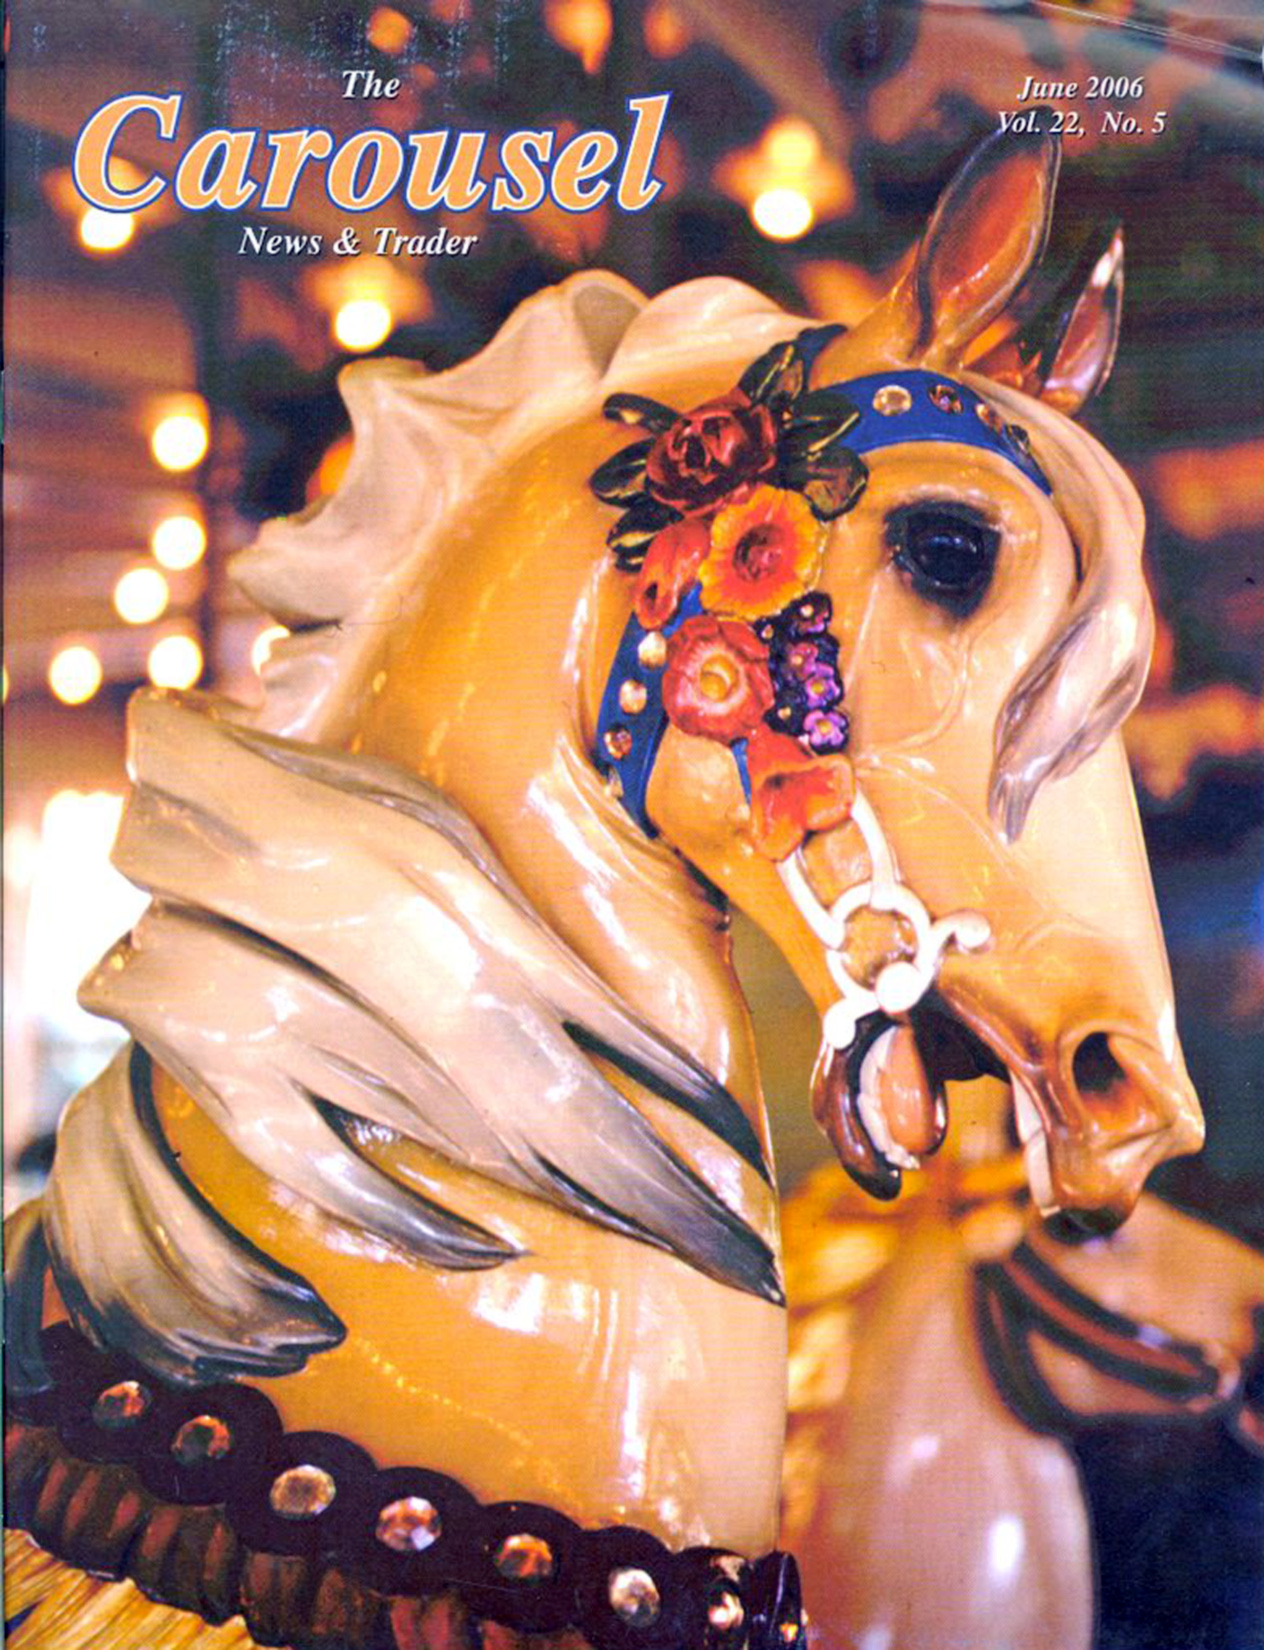 Carousel-news-cover-6_2006-San-Francisco-zoo-carousel-horse-Bill-Manns-photo